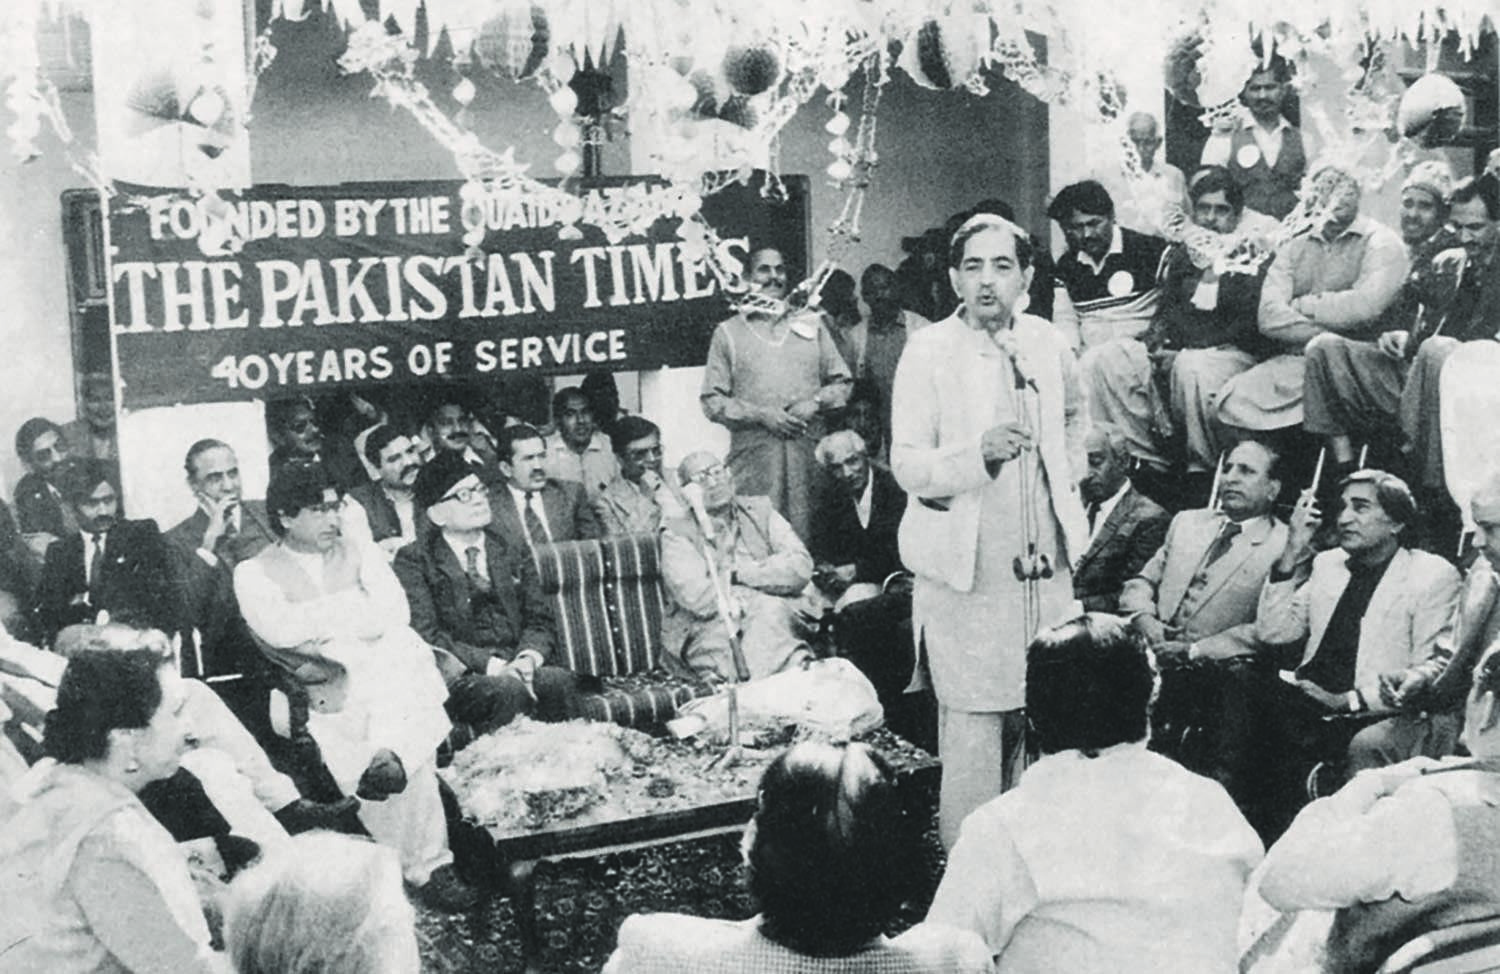 Mazhar Ali Khan addressing members of *Pakistan Times* staff at a reception (above) to mark four decades of his service. | Photo: Mazhar Ali Khan Family Archives